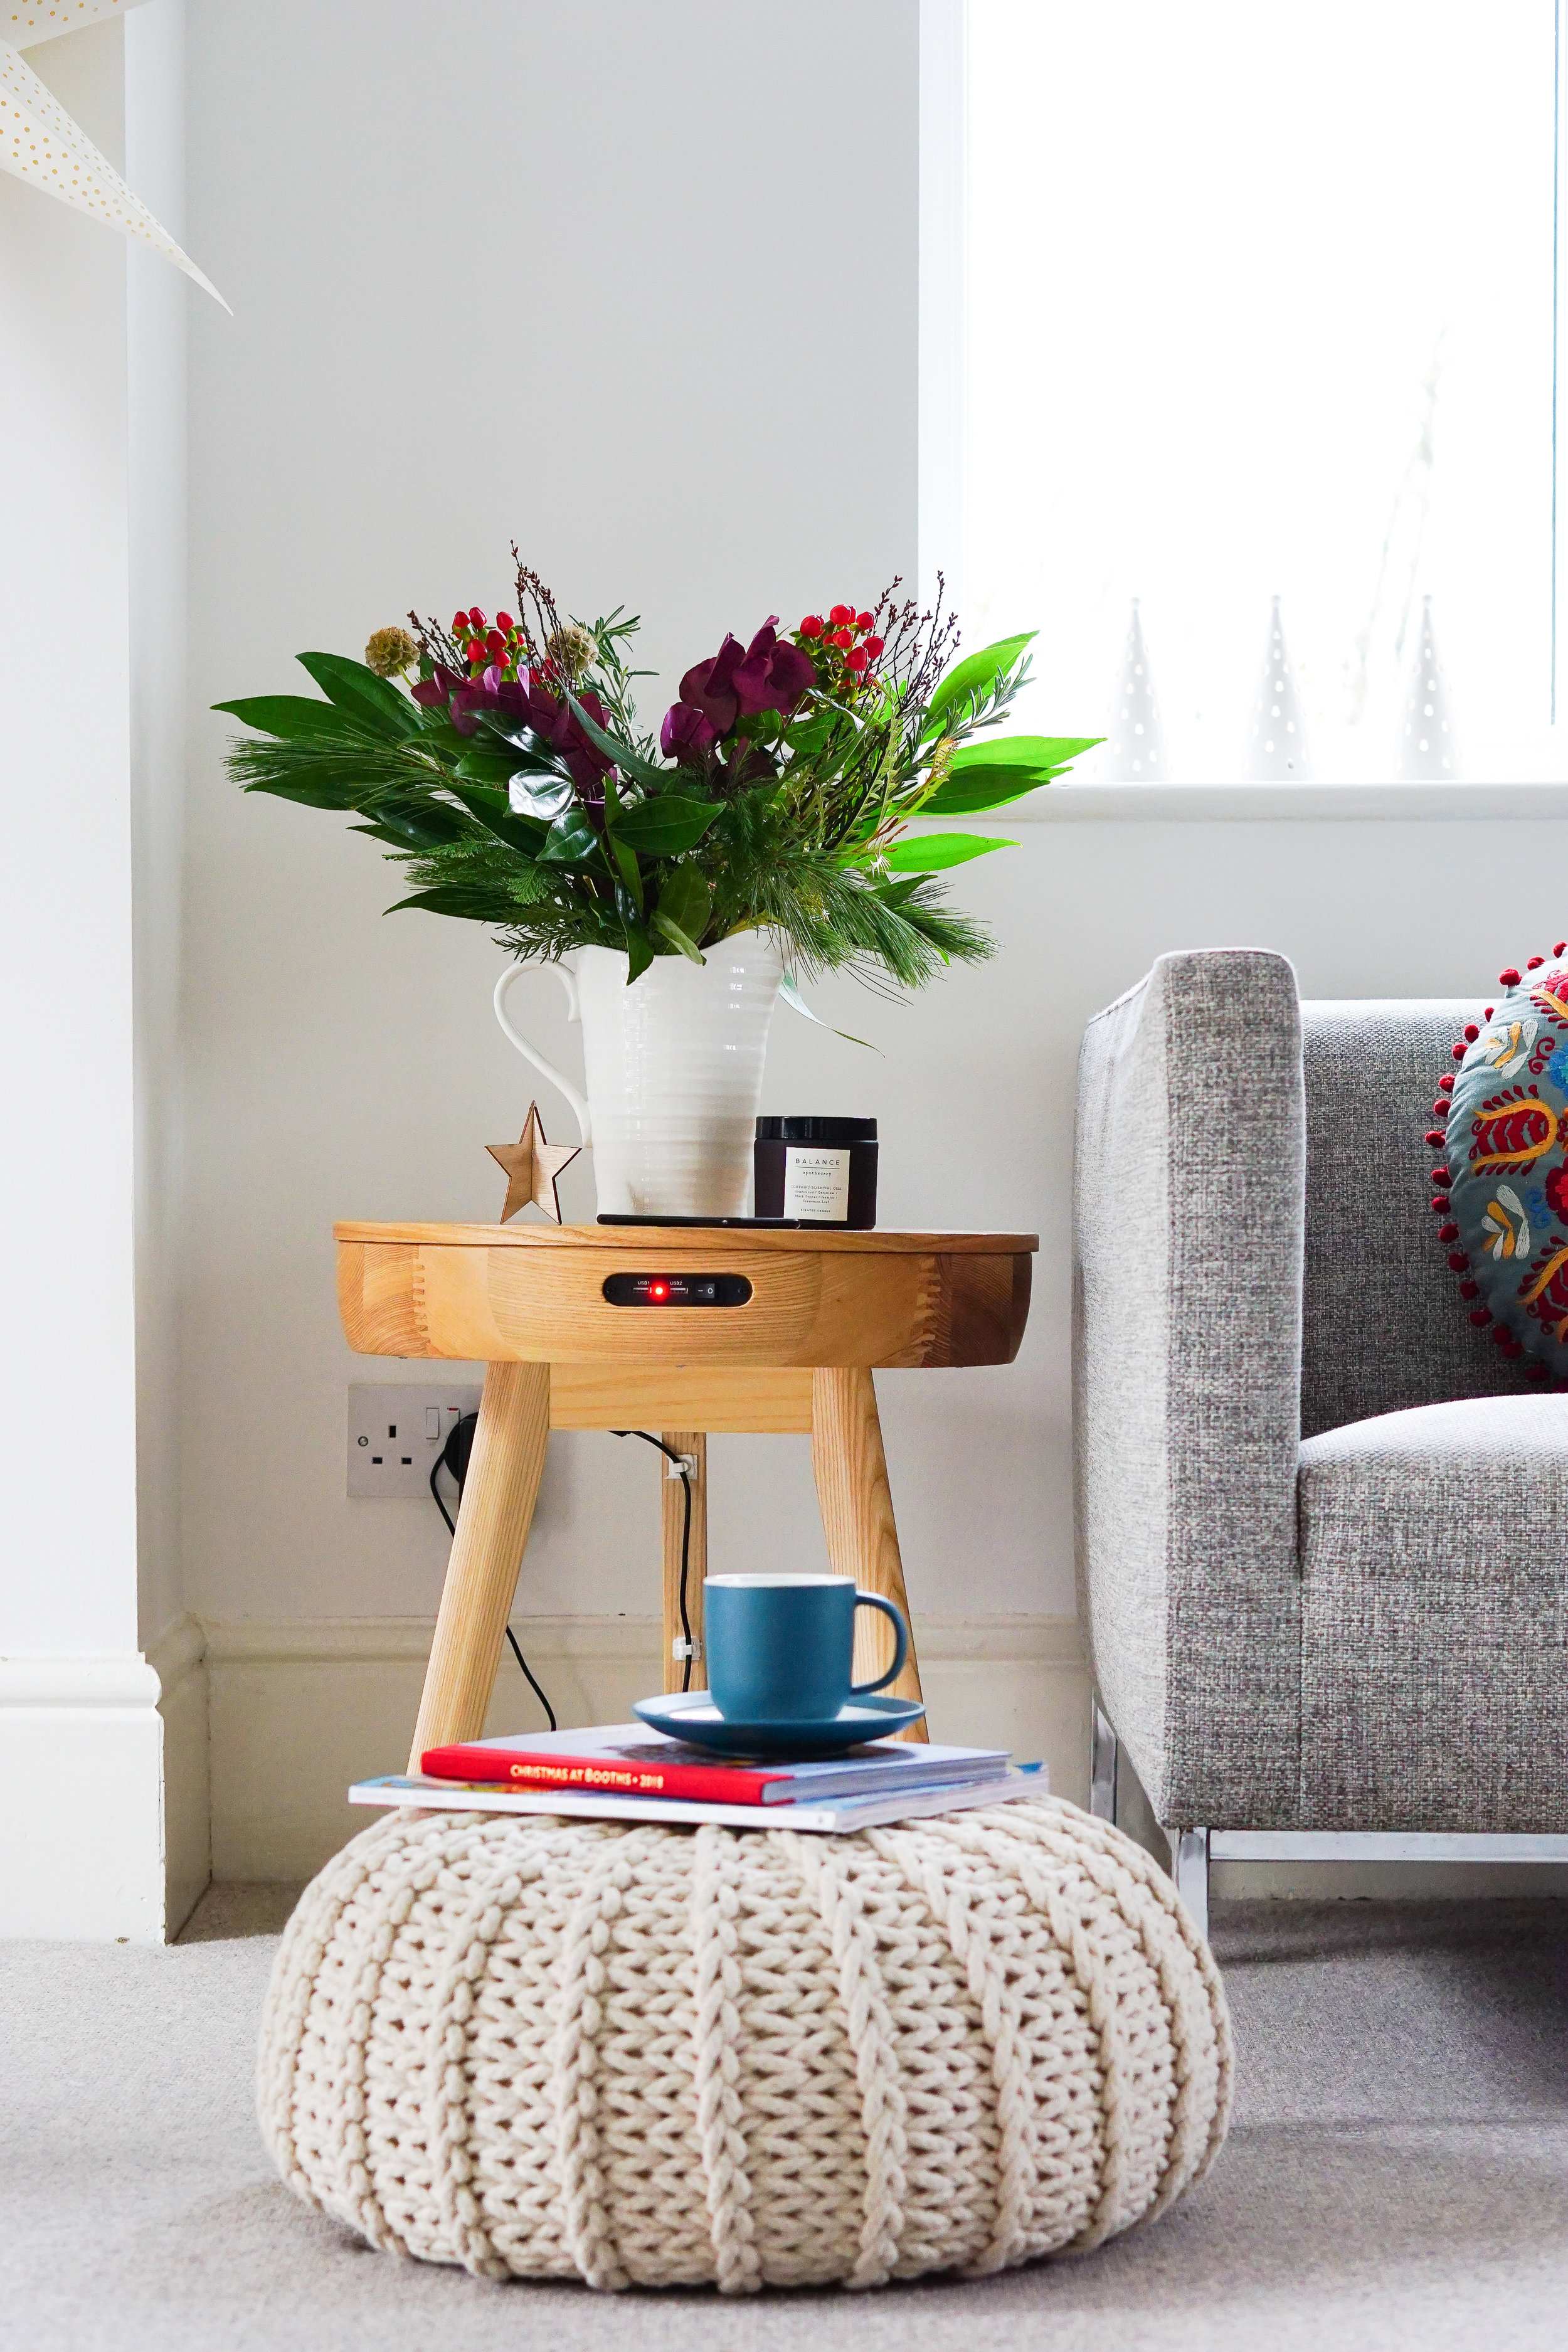 Smart furniture: Scandinavian inspired style with the latest technology